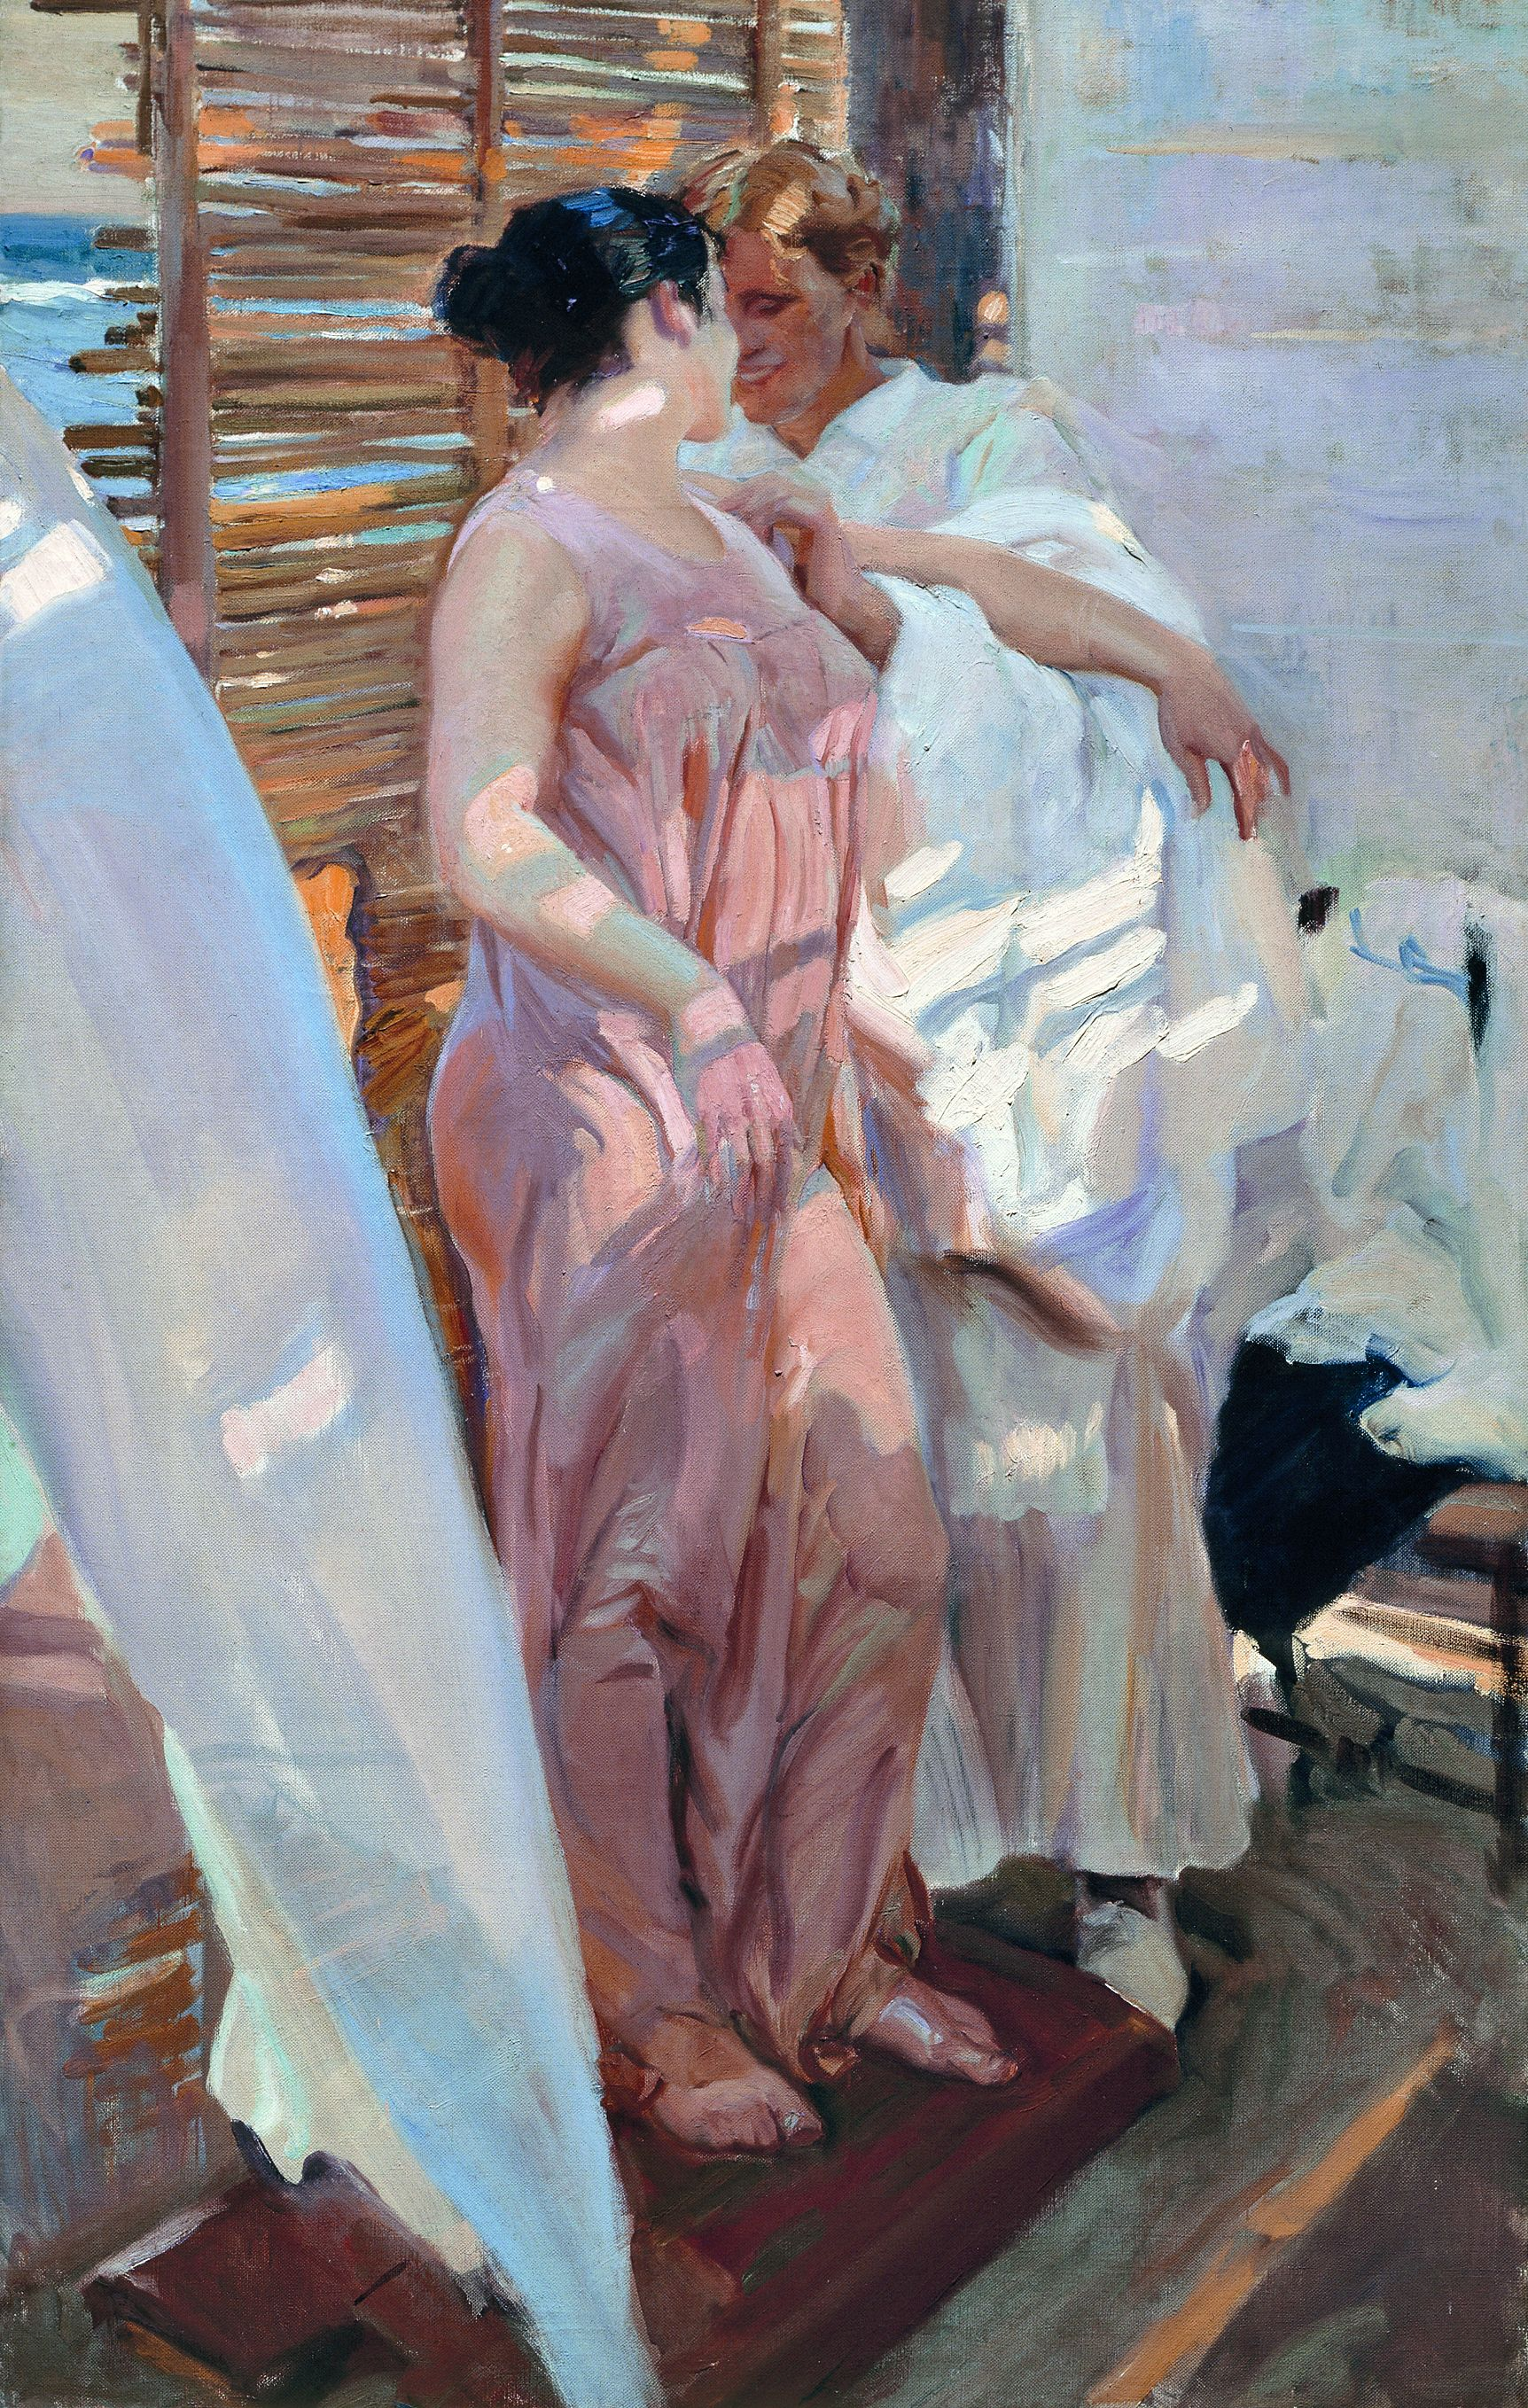 Joaquín Sorolla, The Pink Robe (La bata rosa), 1916, Oil on canvas, 208 × 126.5 cm, © Museo Sorolla, Madrid